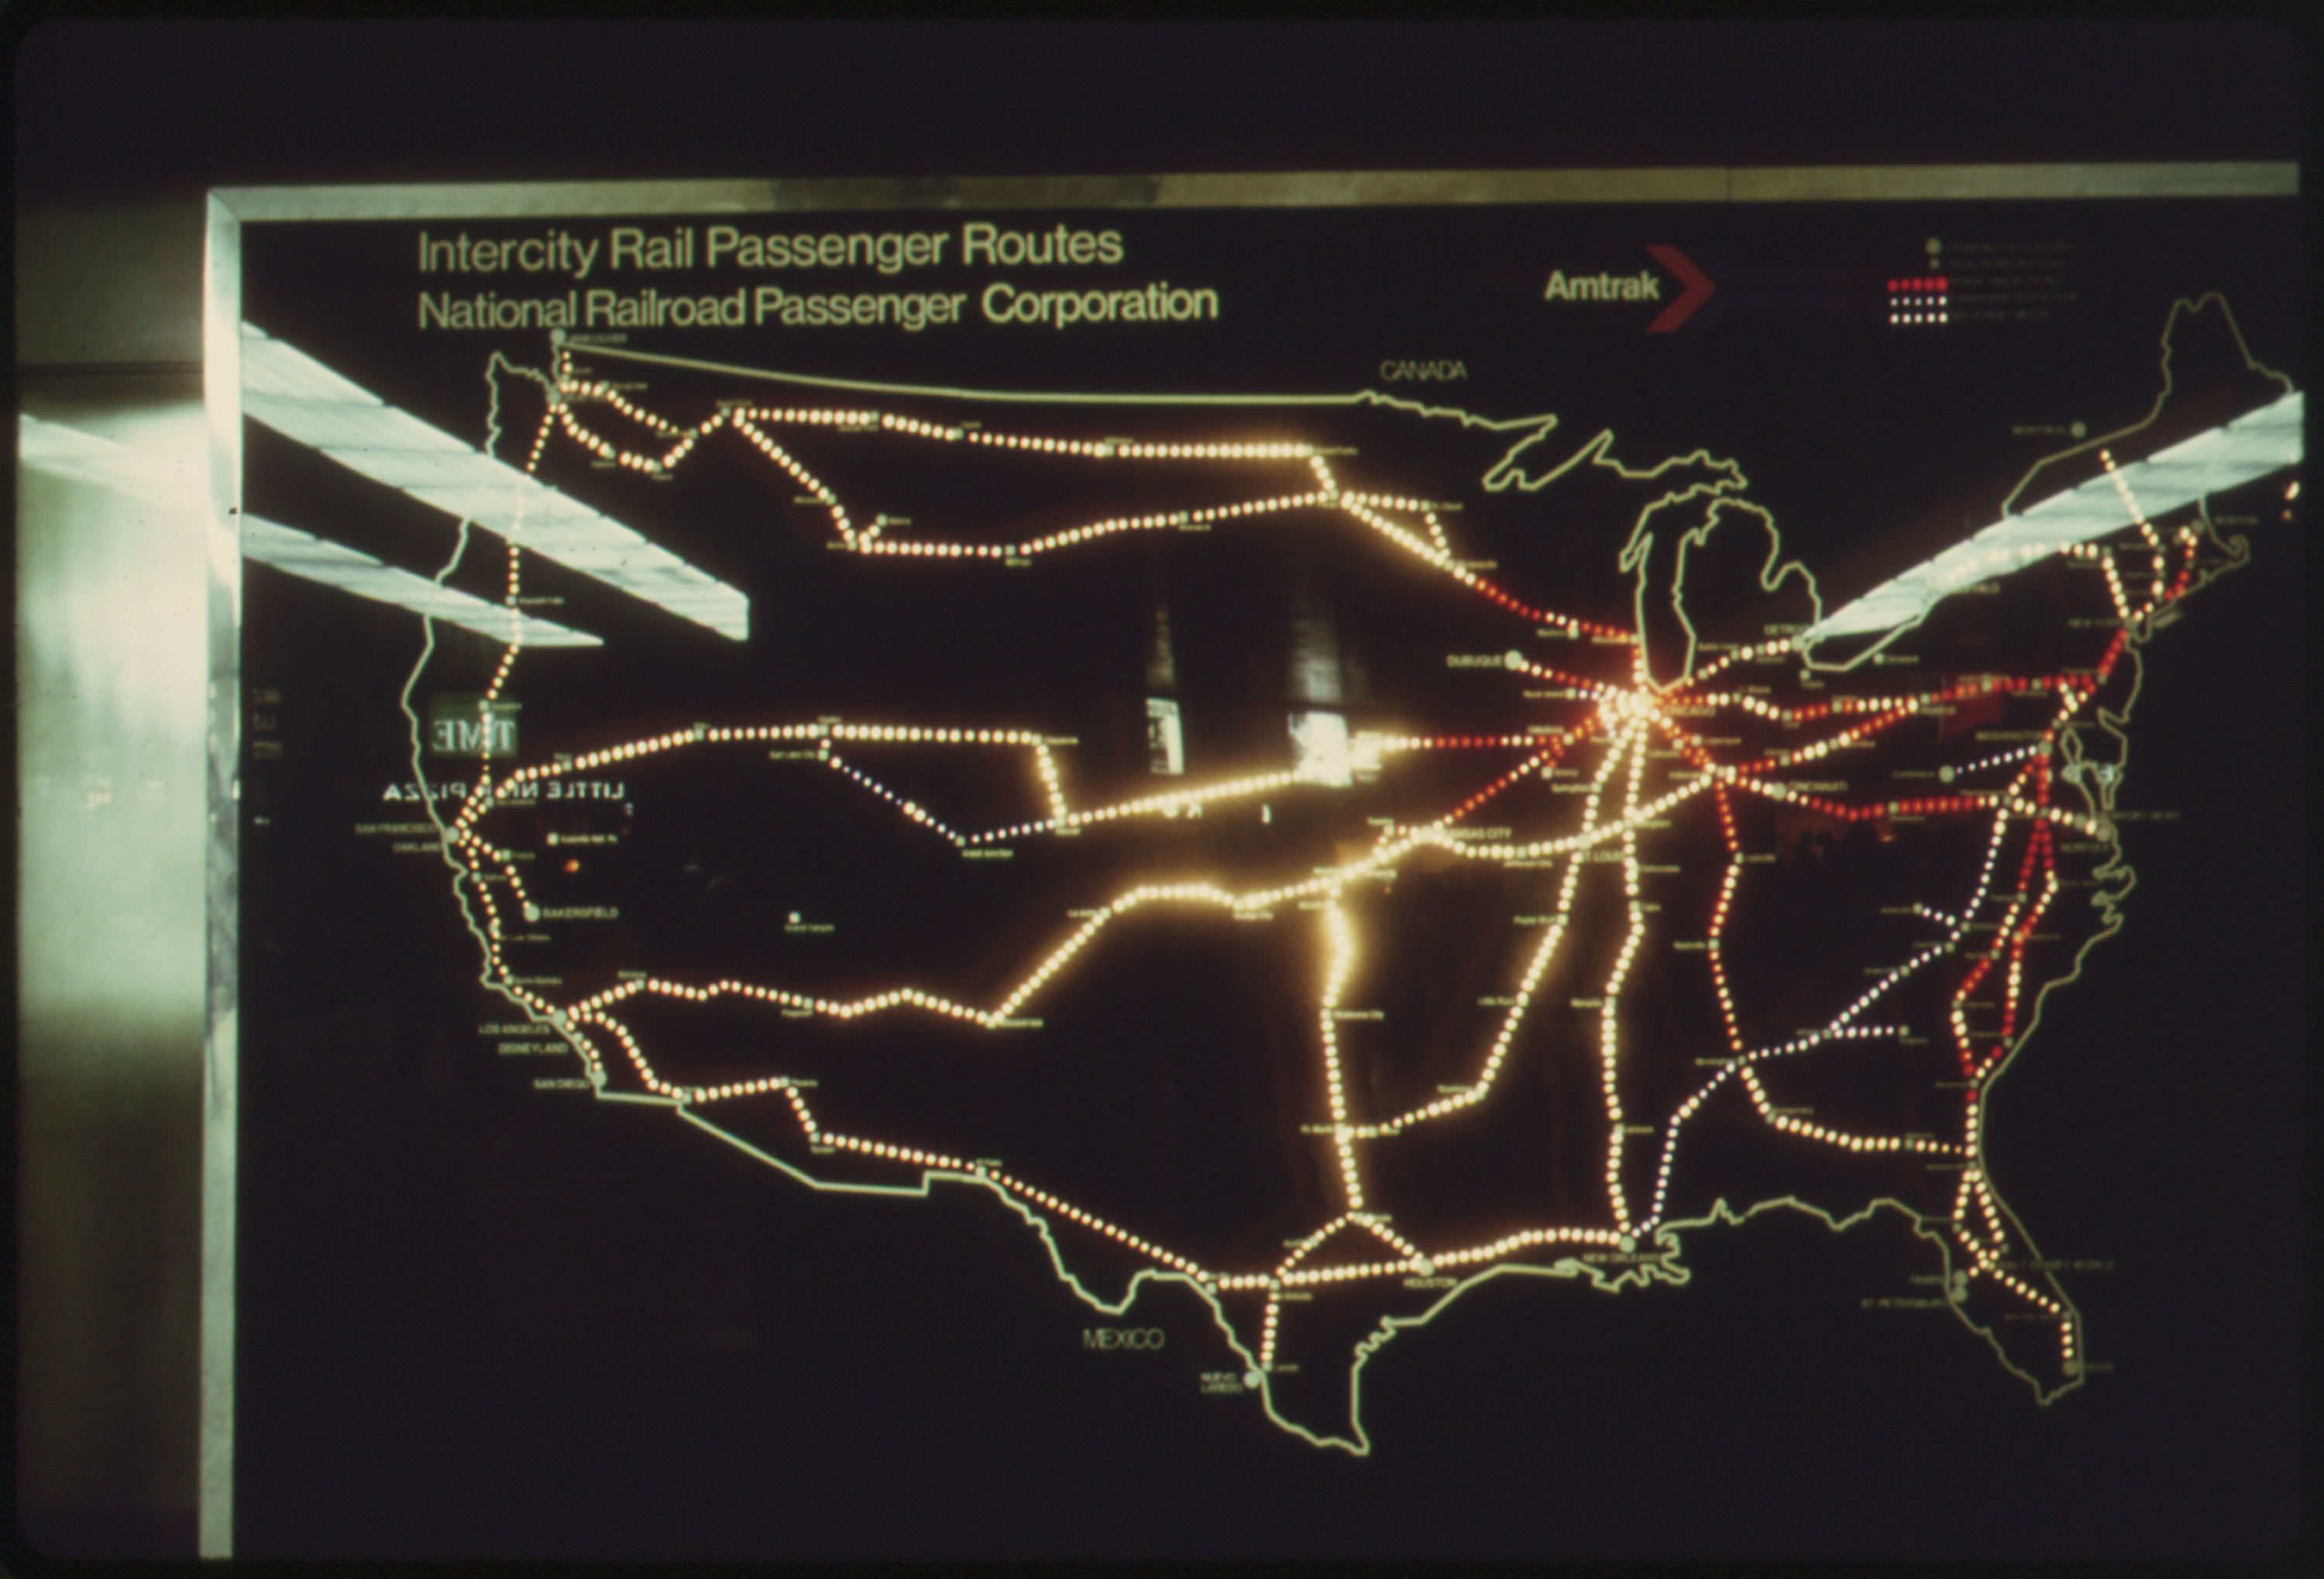 file amtrak penger train routes in the united states are shown on this lighted map